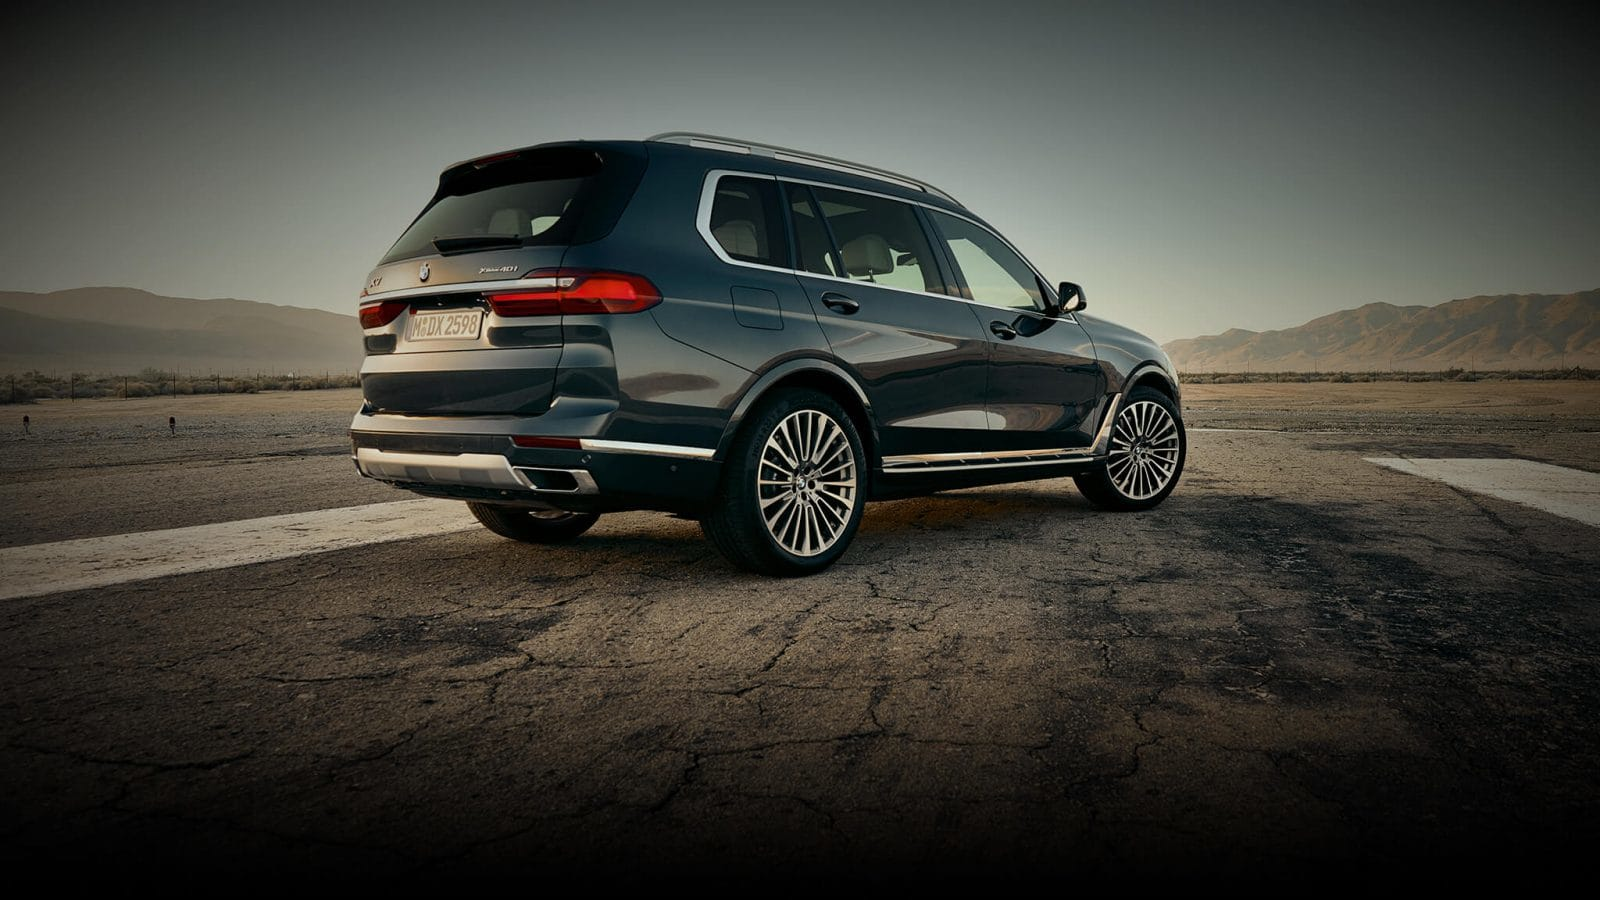 2019 BMW X7 Black Exterior Rear View Picture